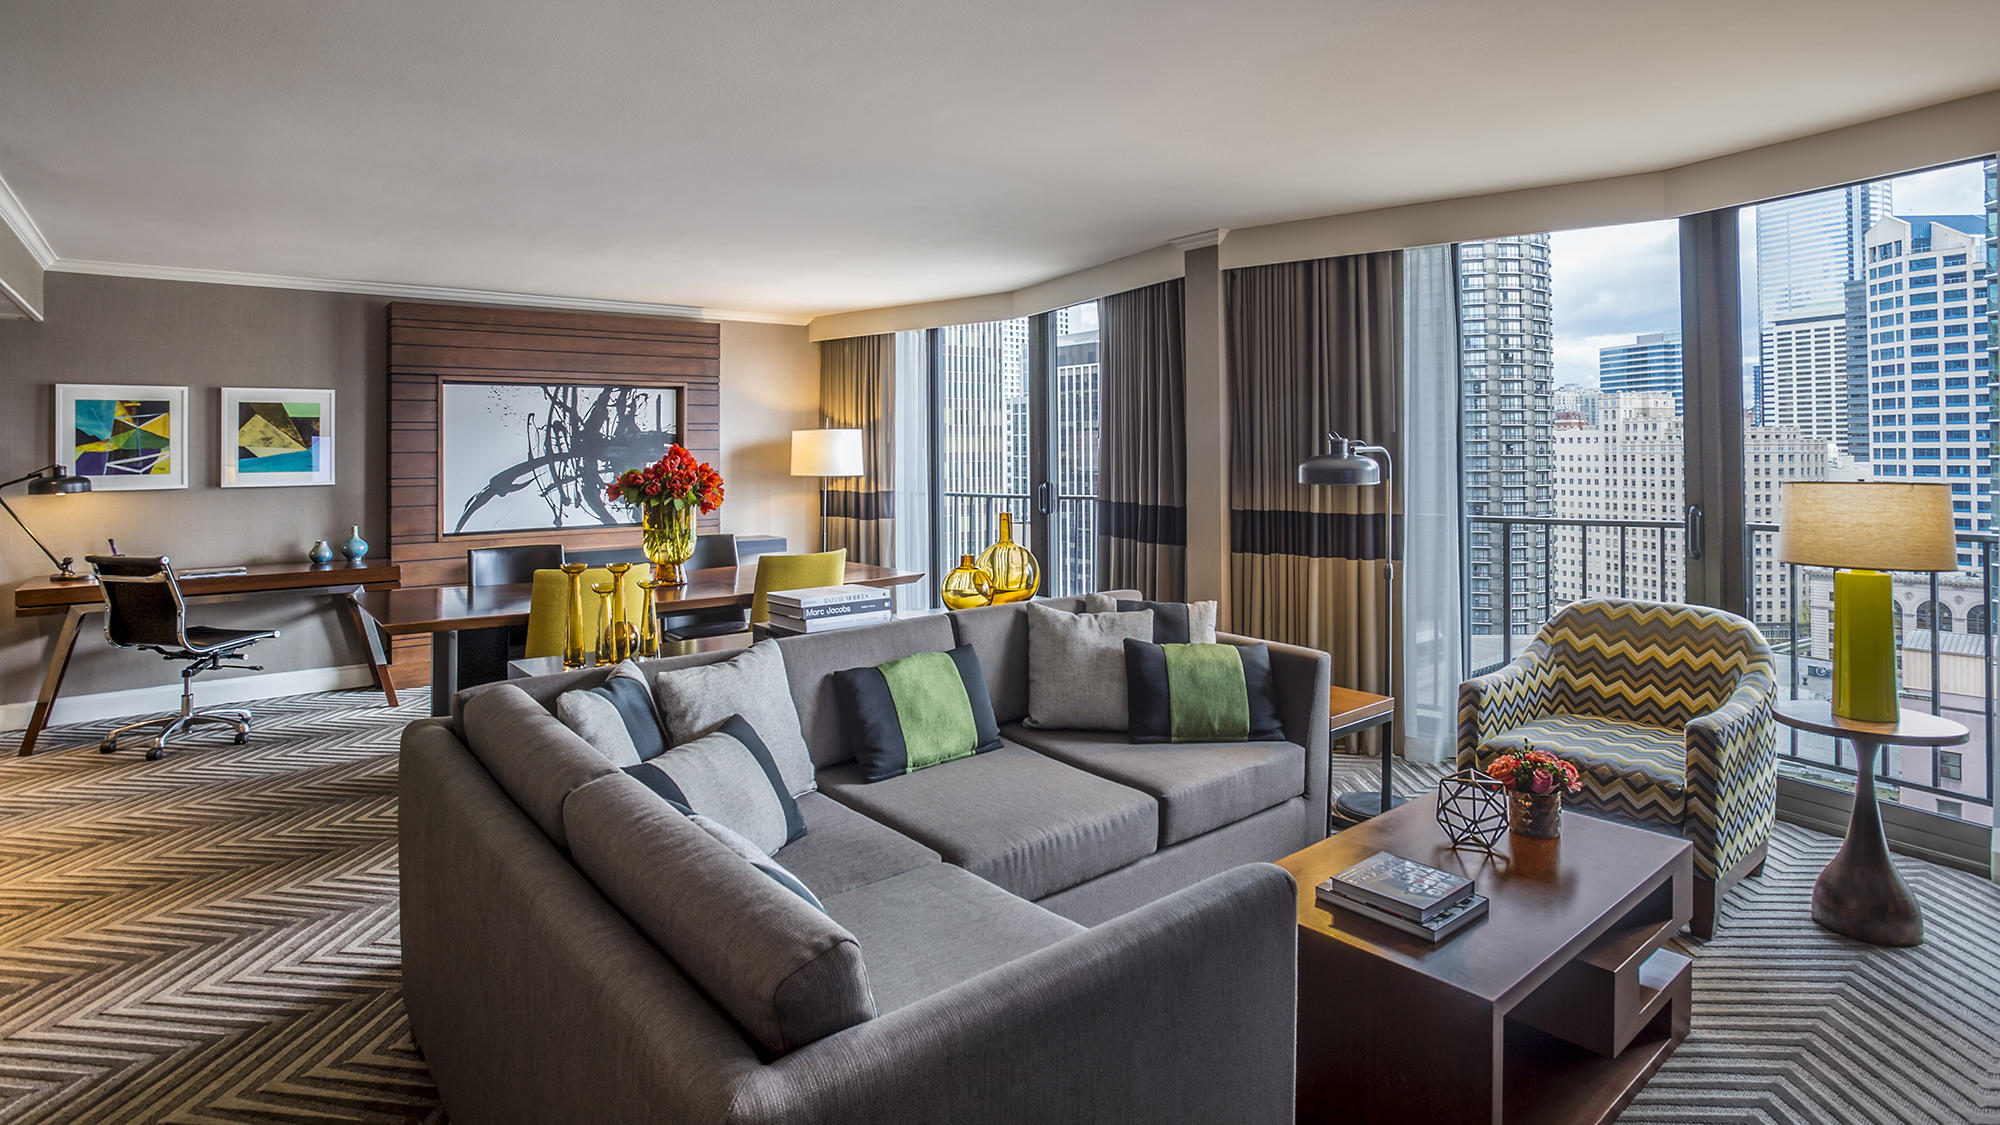 Emerald Suite offer details